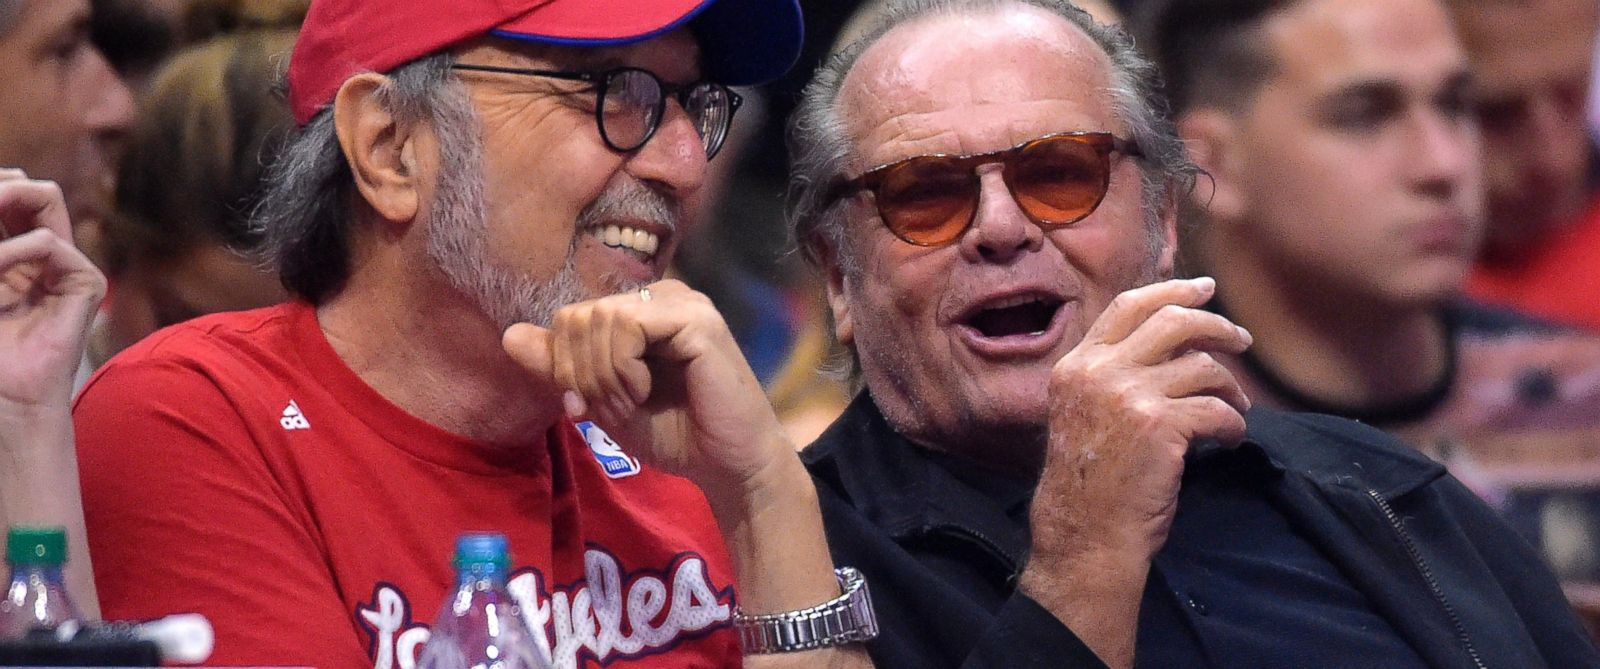 PHOTO: Actor Jack Nicholson, right, and producer James L. Brooks watch the Los Angeles Clippers play the Oklahoma City Thunder, May 15, 2014 in Los Angeles.